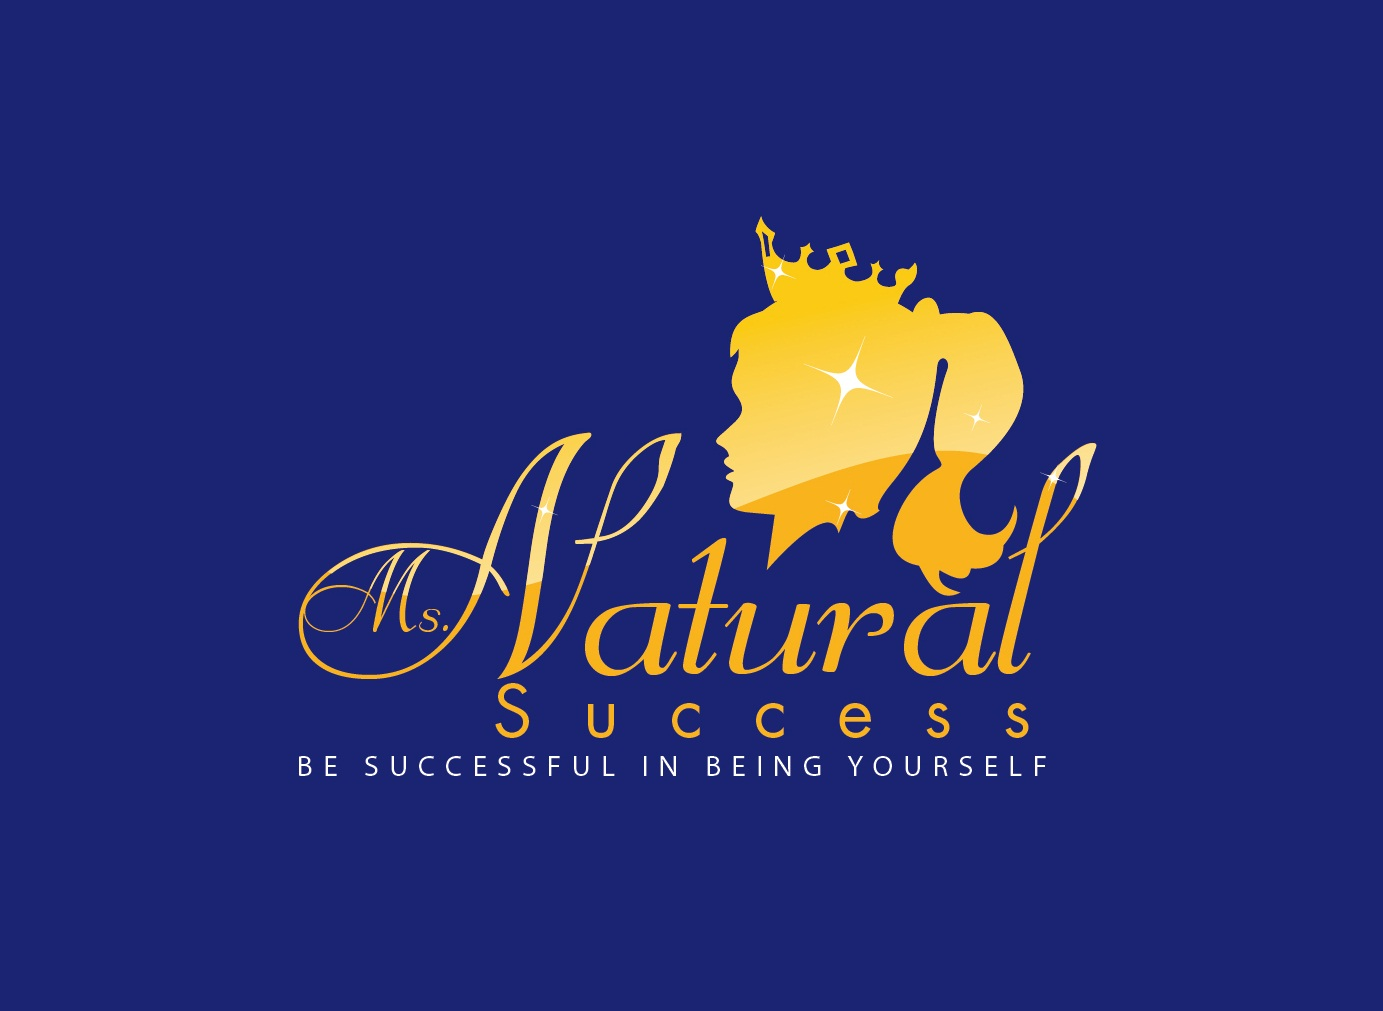 Ms.-Natural-Success_